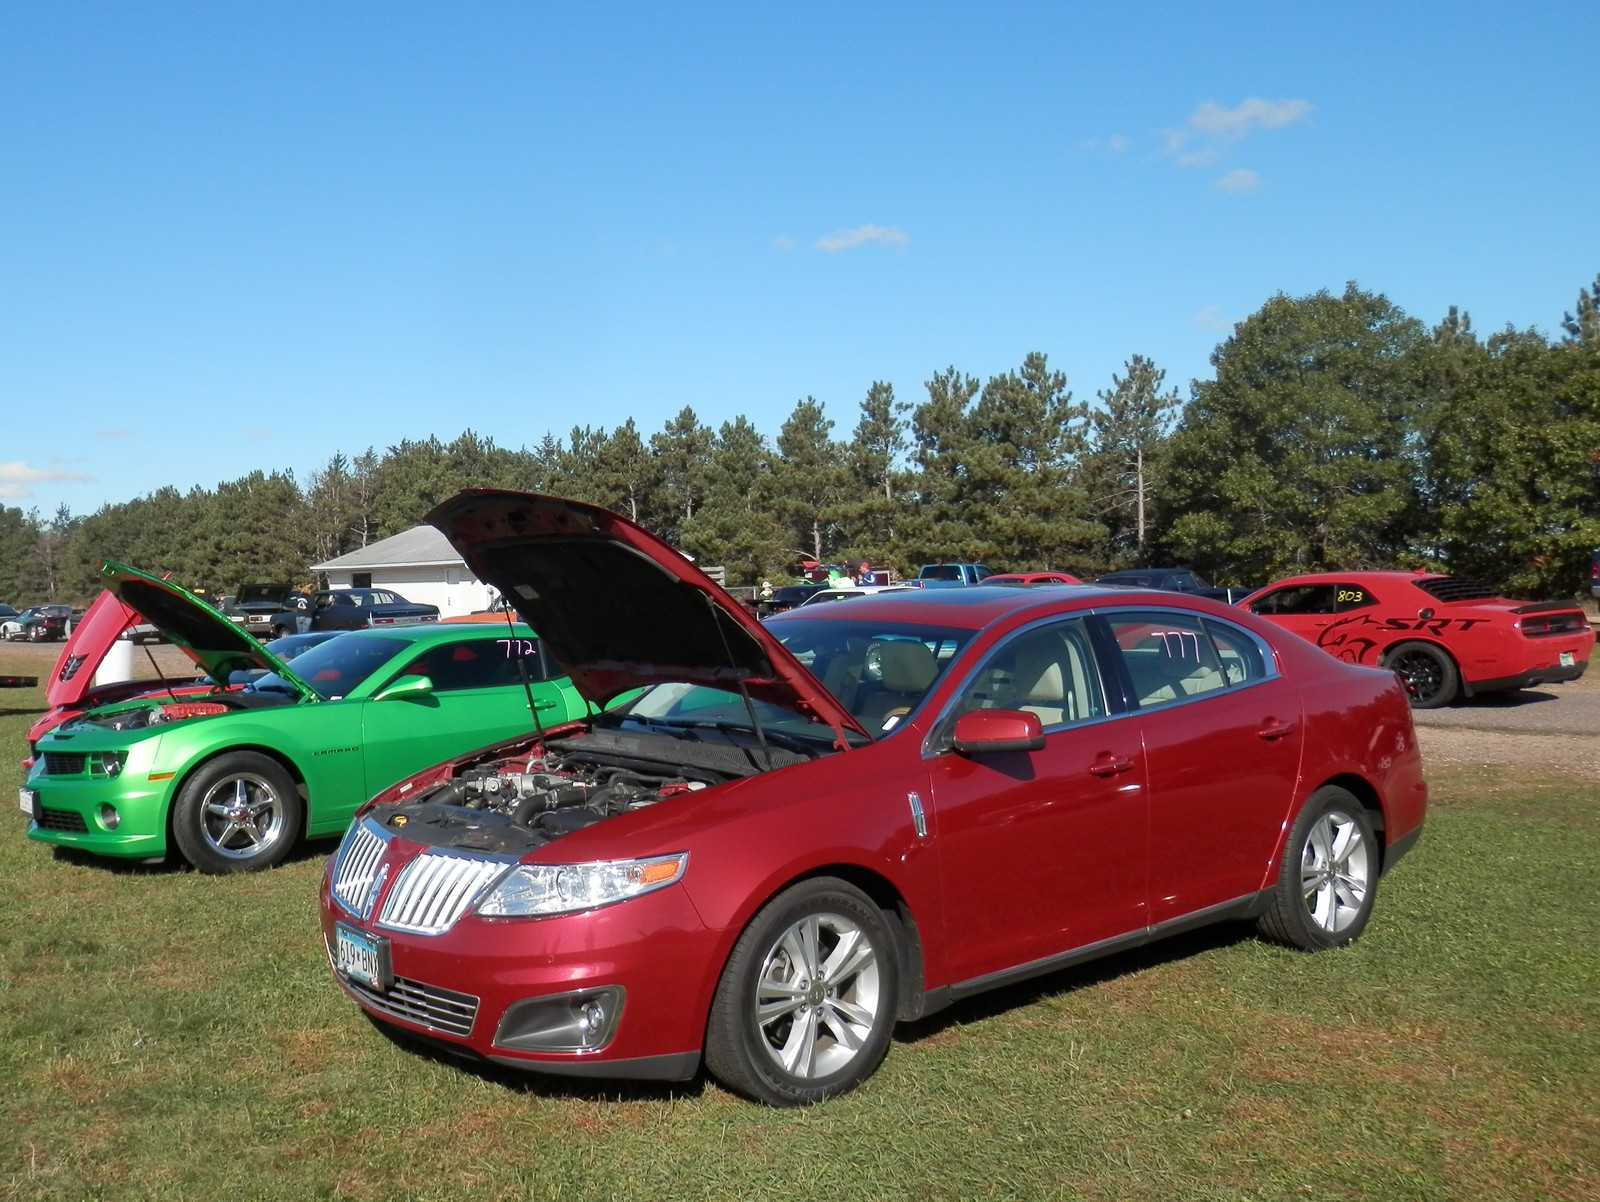 2010 lincoln mks 1 4 mile drag racing timeslip specs 0 60. Black Bedroom Furniture Sets. Home Design Ideas